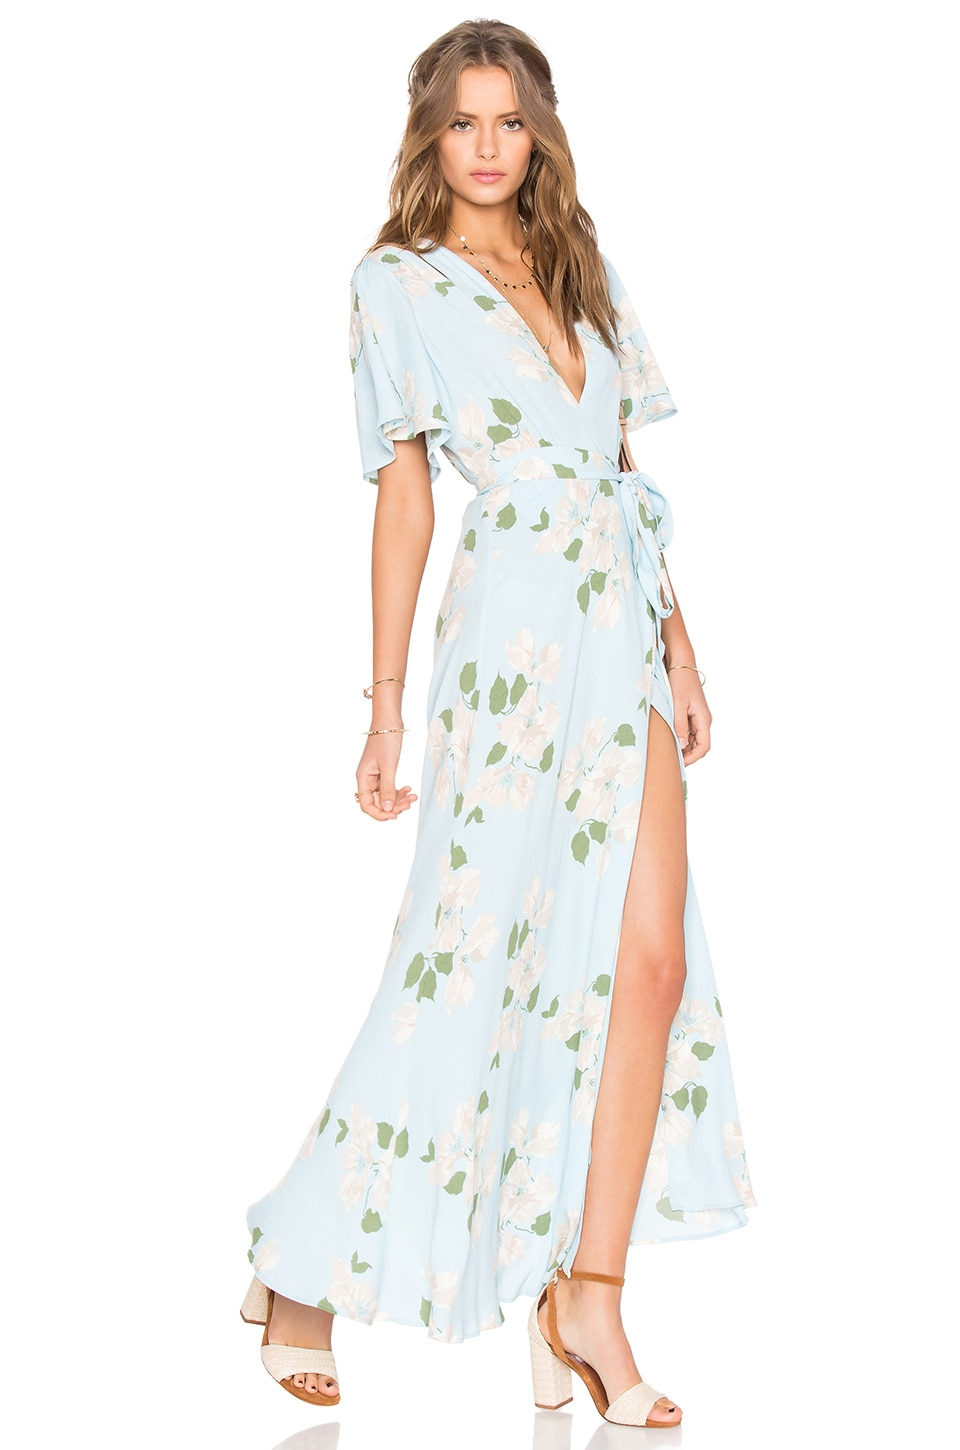 Privacy Please Plaza Kimono Dress in Gramont